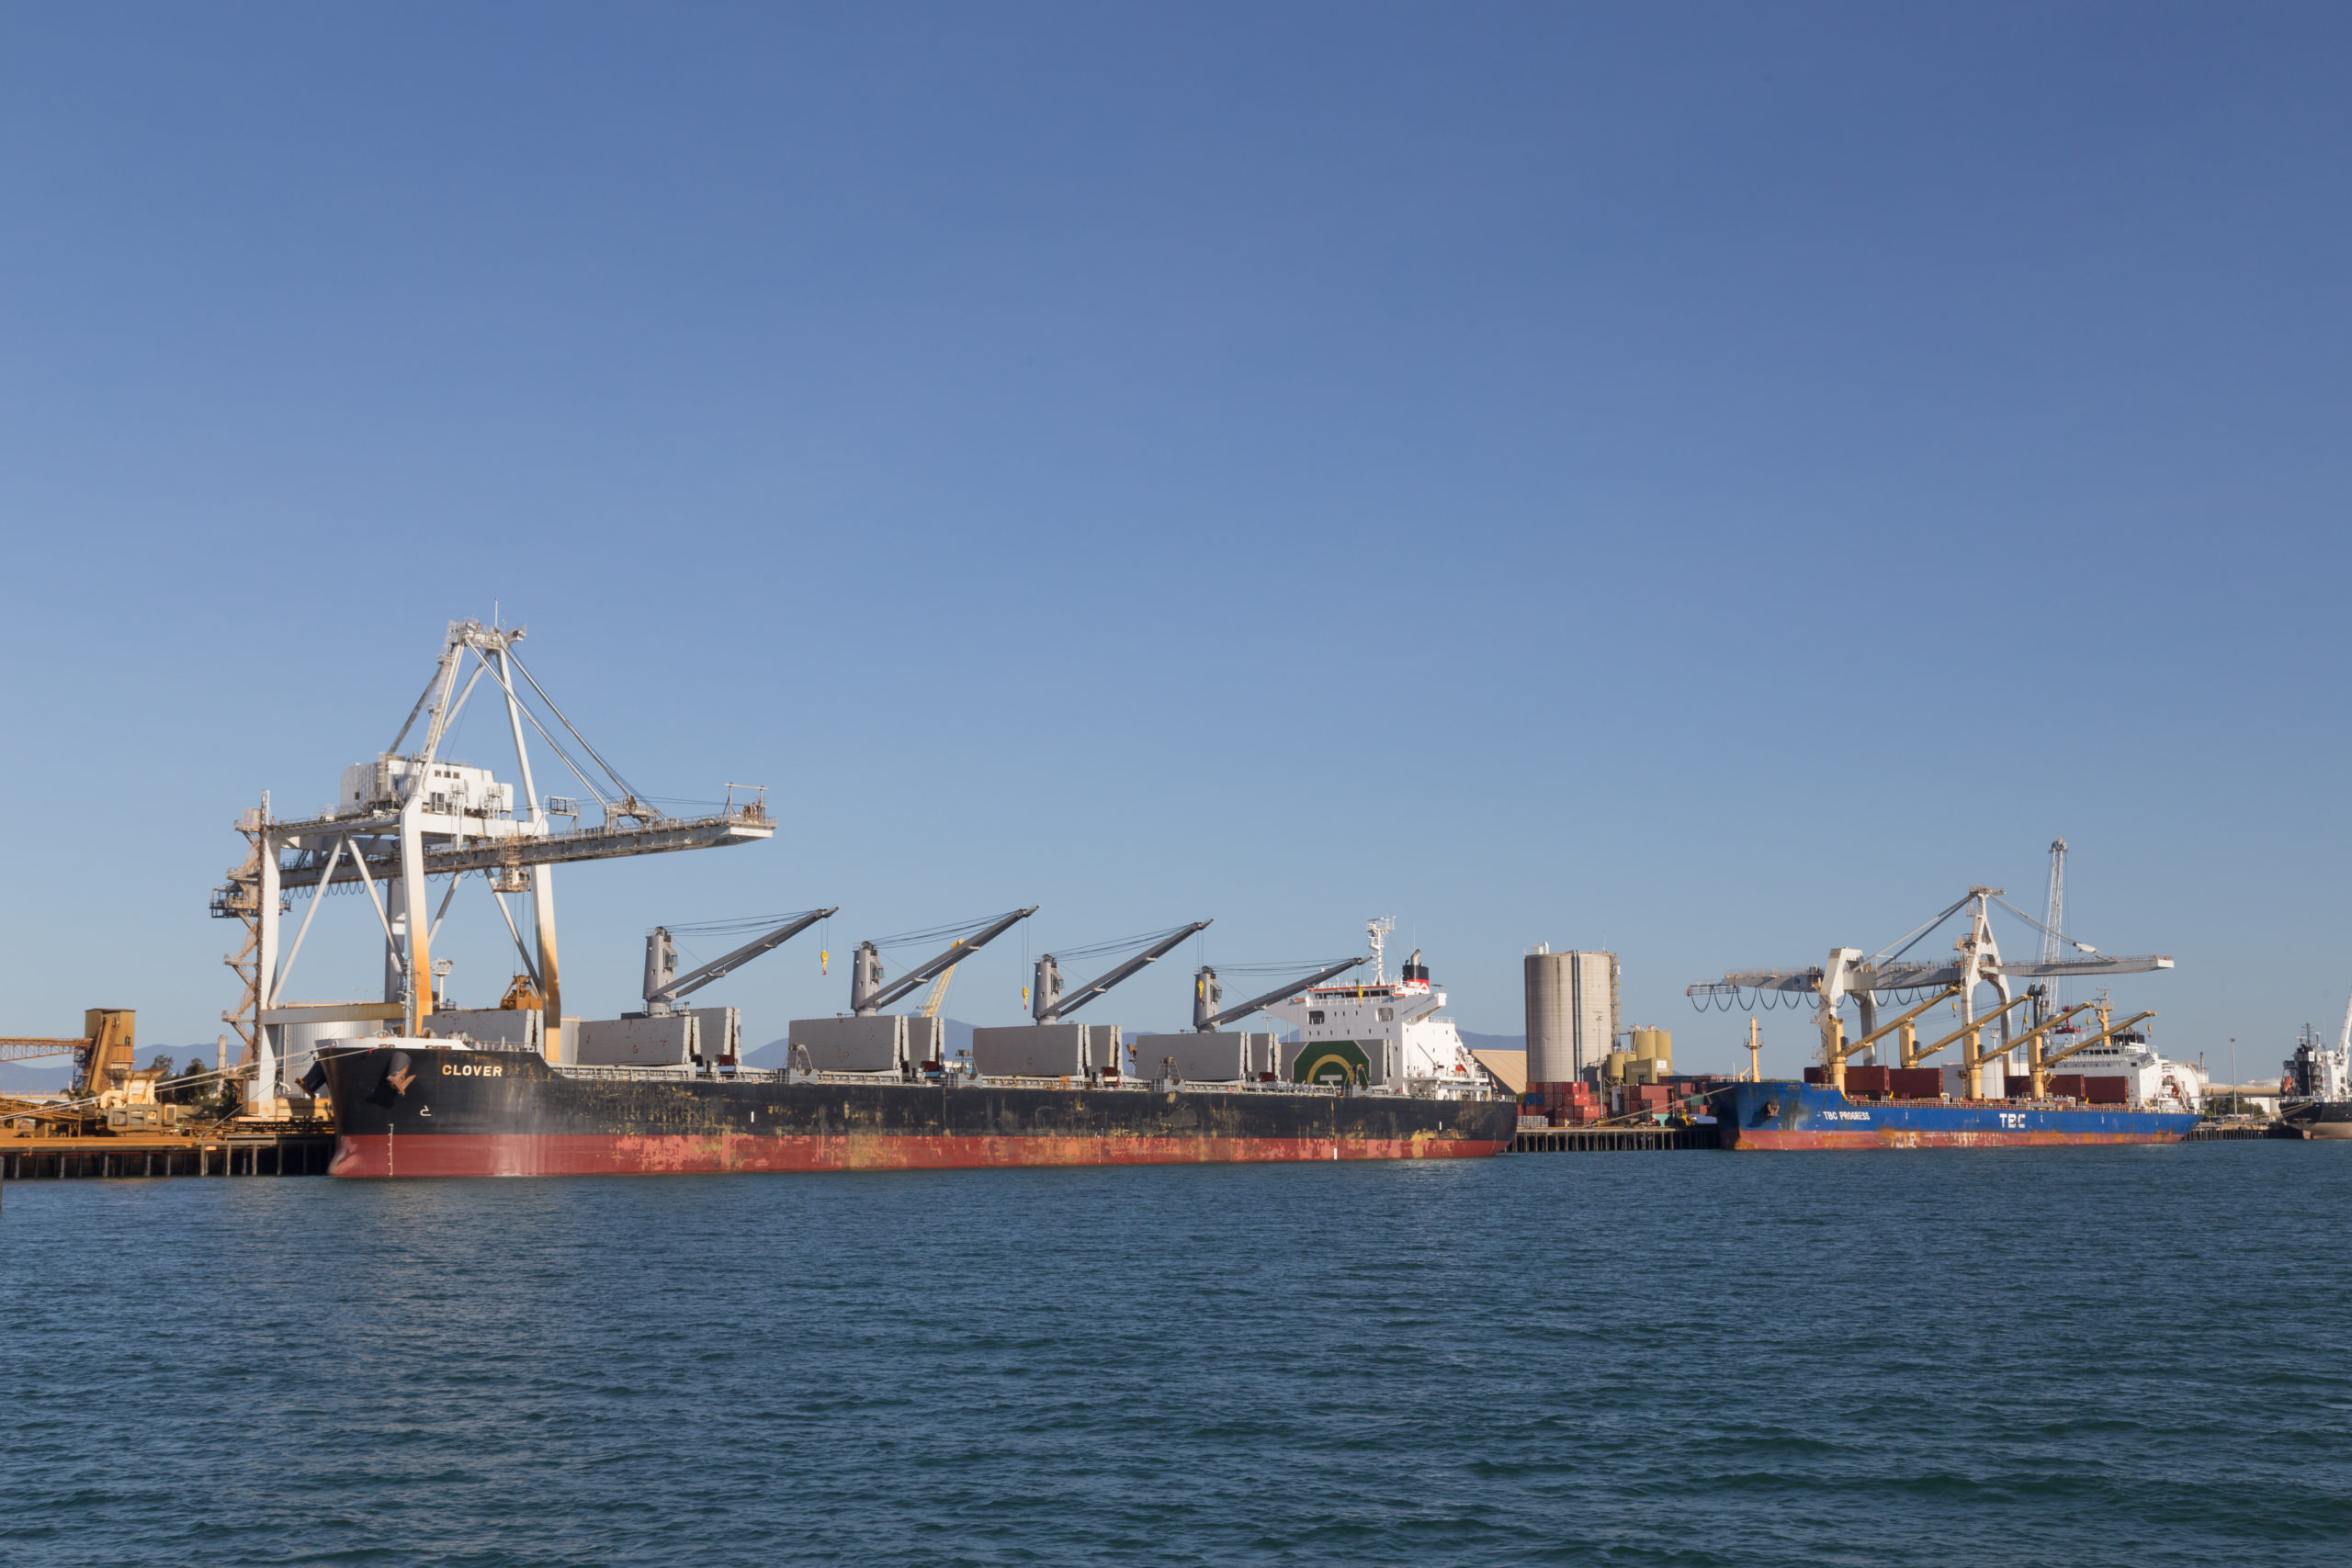 Townsville, Australia - May 11, 2015: Cargo ships are being unloaded at container terminal.